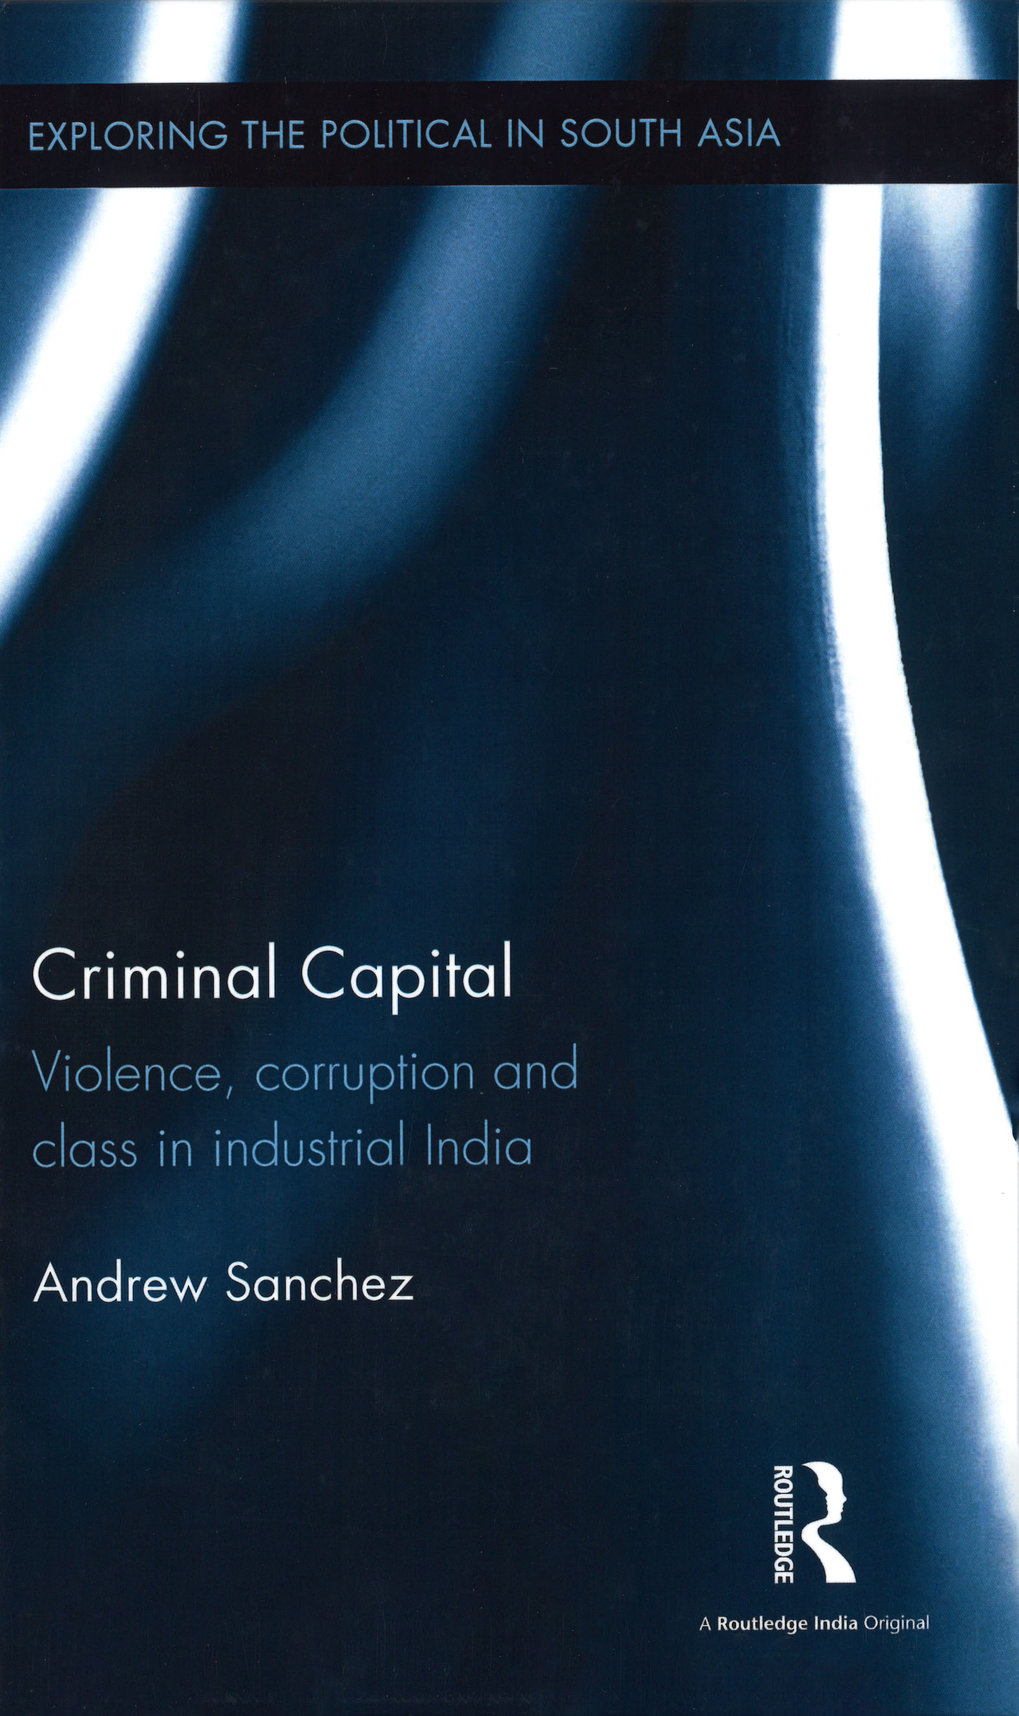 Criminal Capital. Violence, corruption and class in industrial India